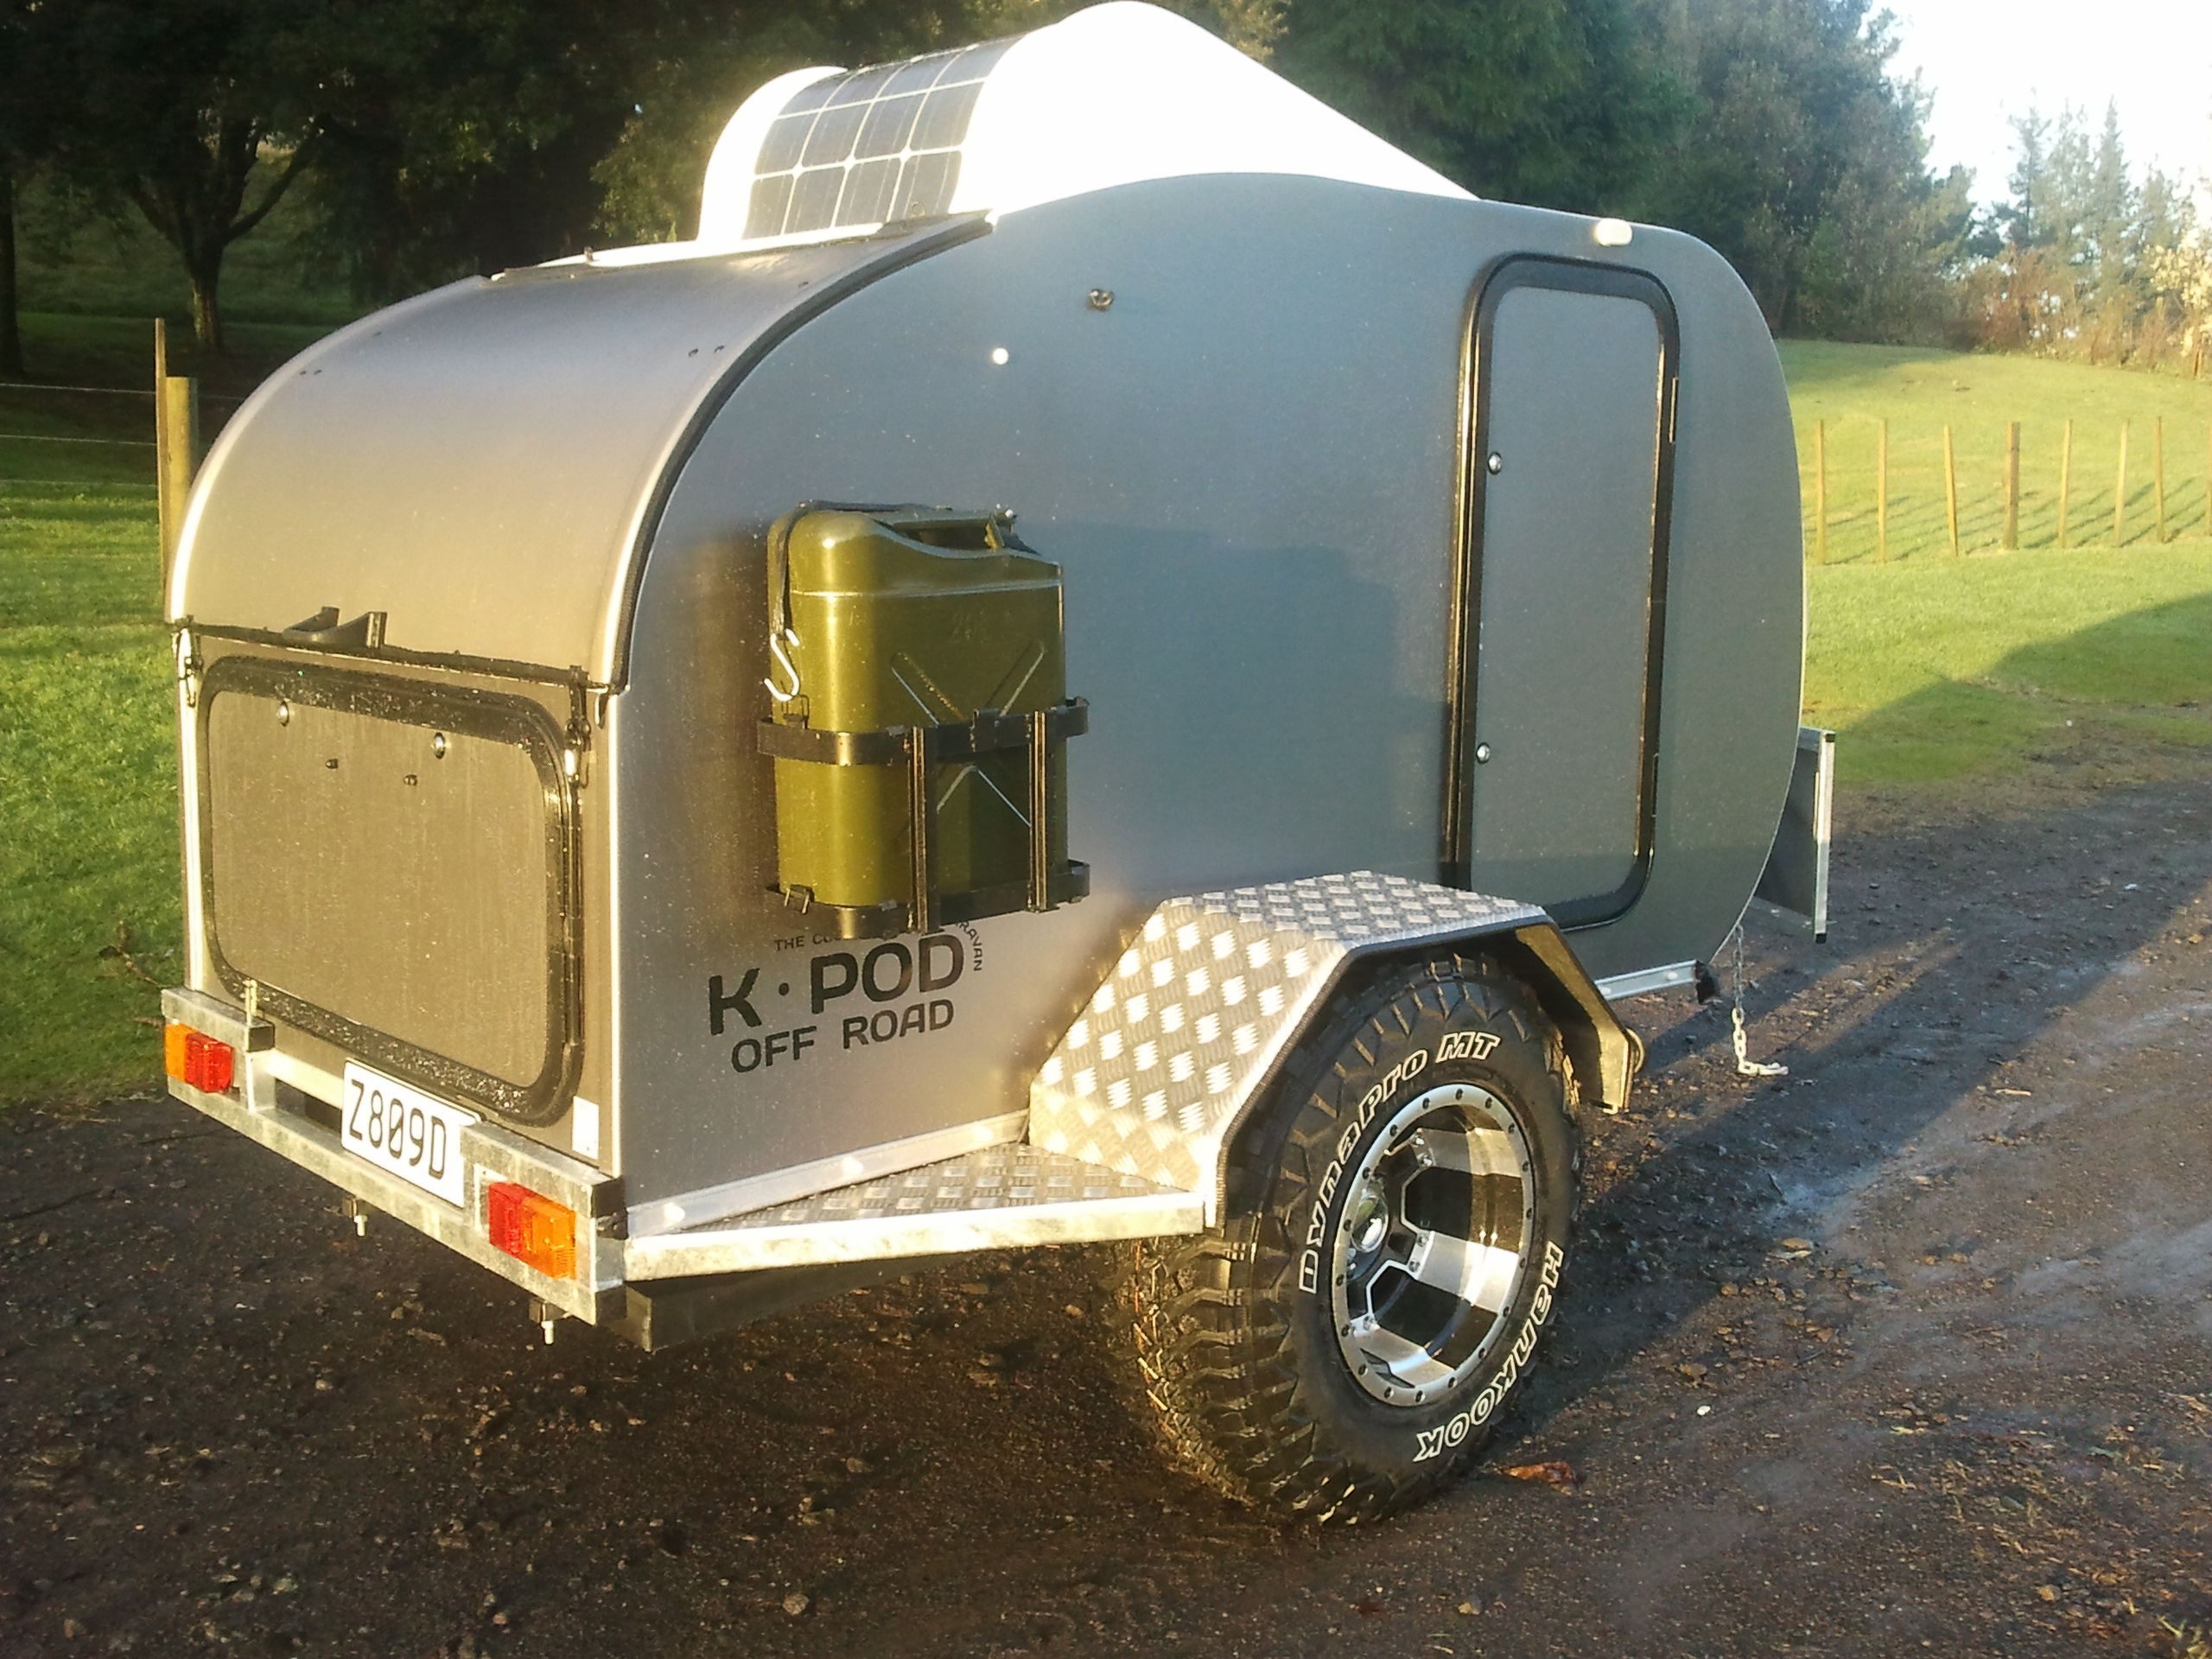 Our Own Off Road K Pod Made In Nz For All Outdoor Lovers Who Want